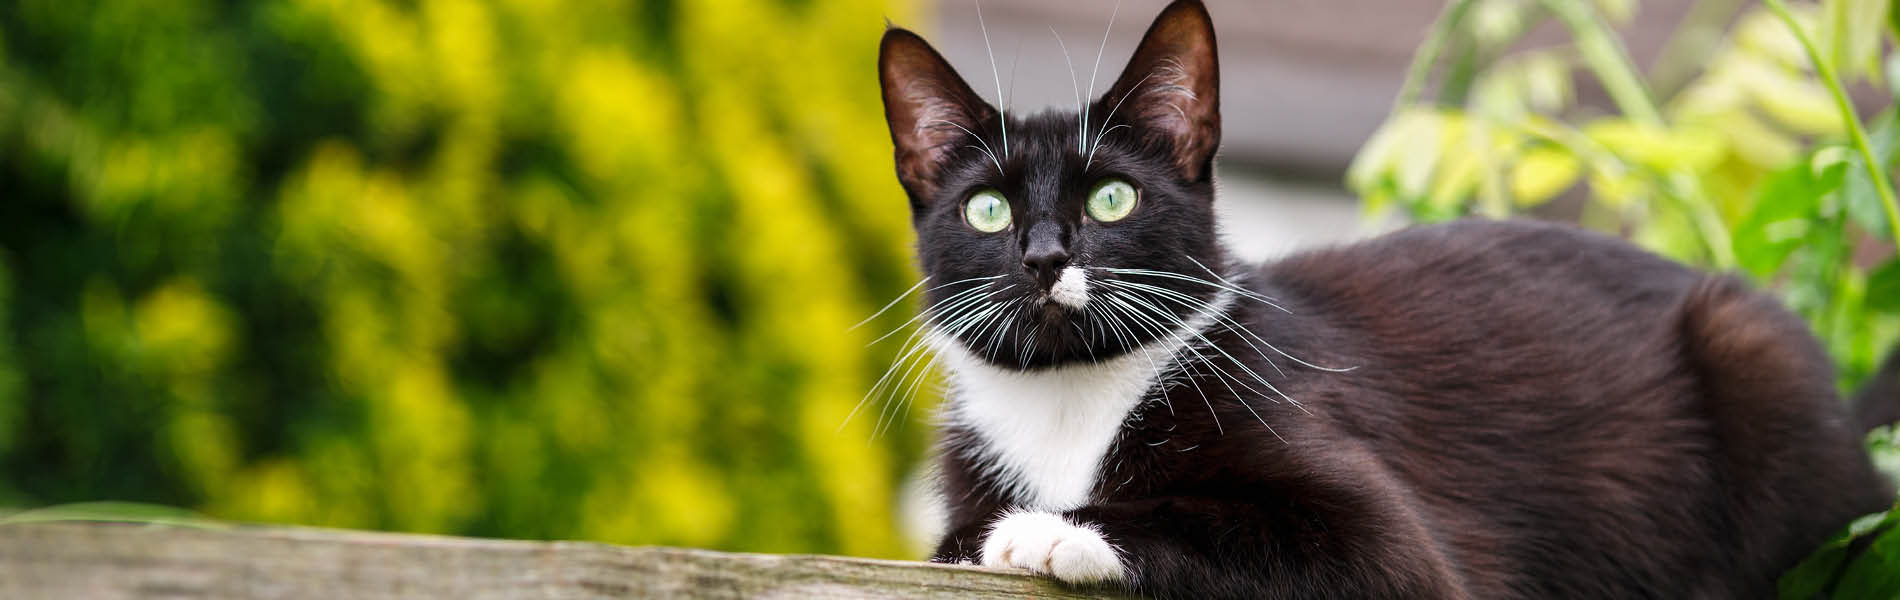 Protection antiparasites pour chats 1